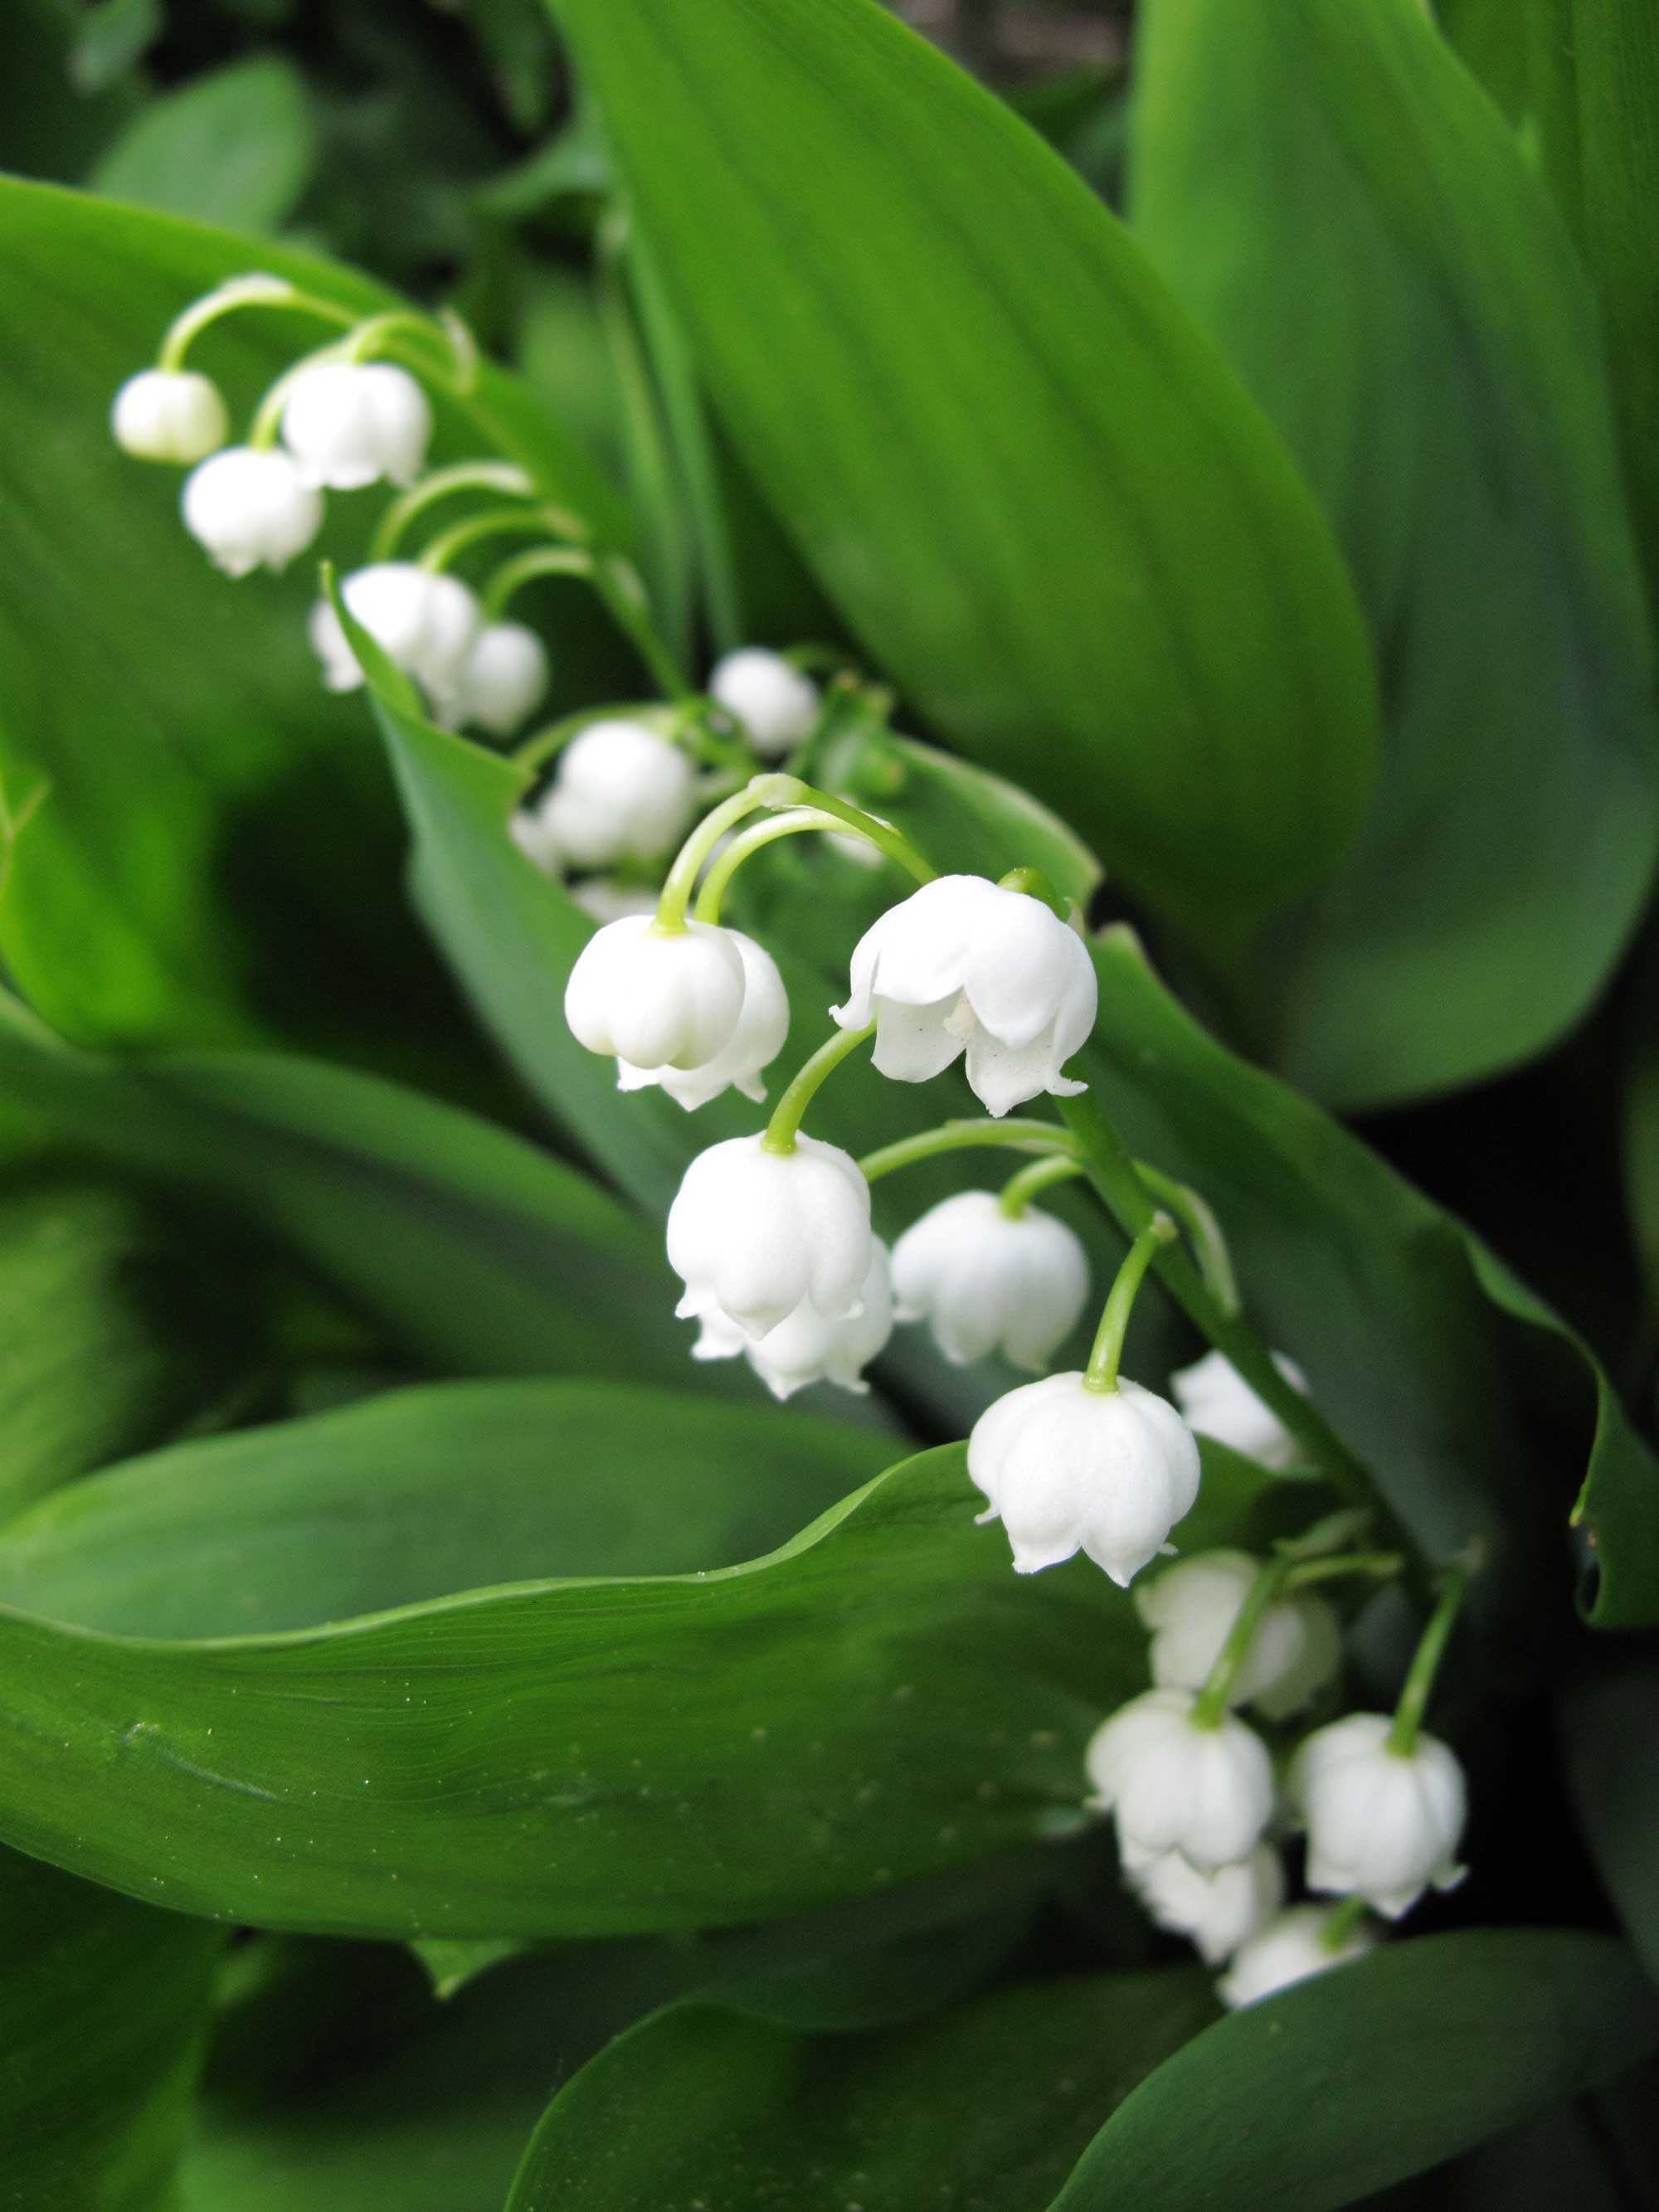 Growing lily of the valley tips and tales longfield gardens growing lily of the valley longfield gardens izmirmasajfo Choice Image